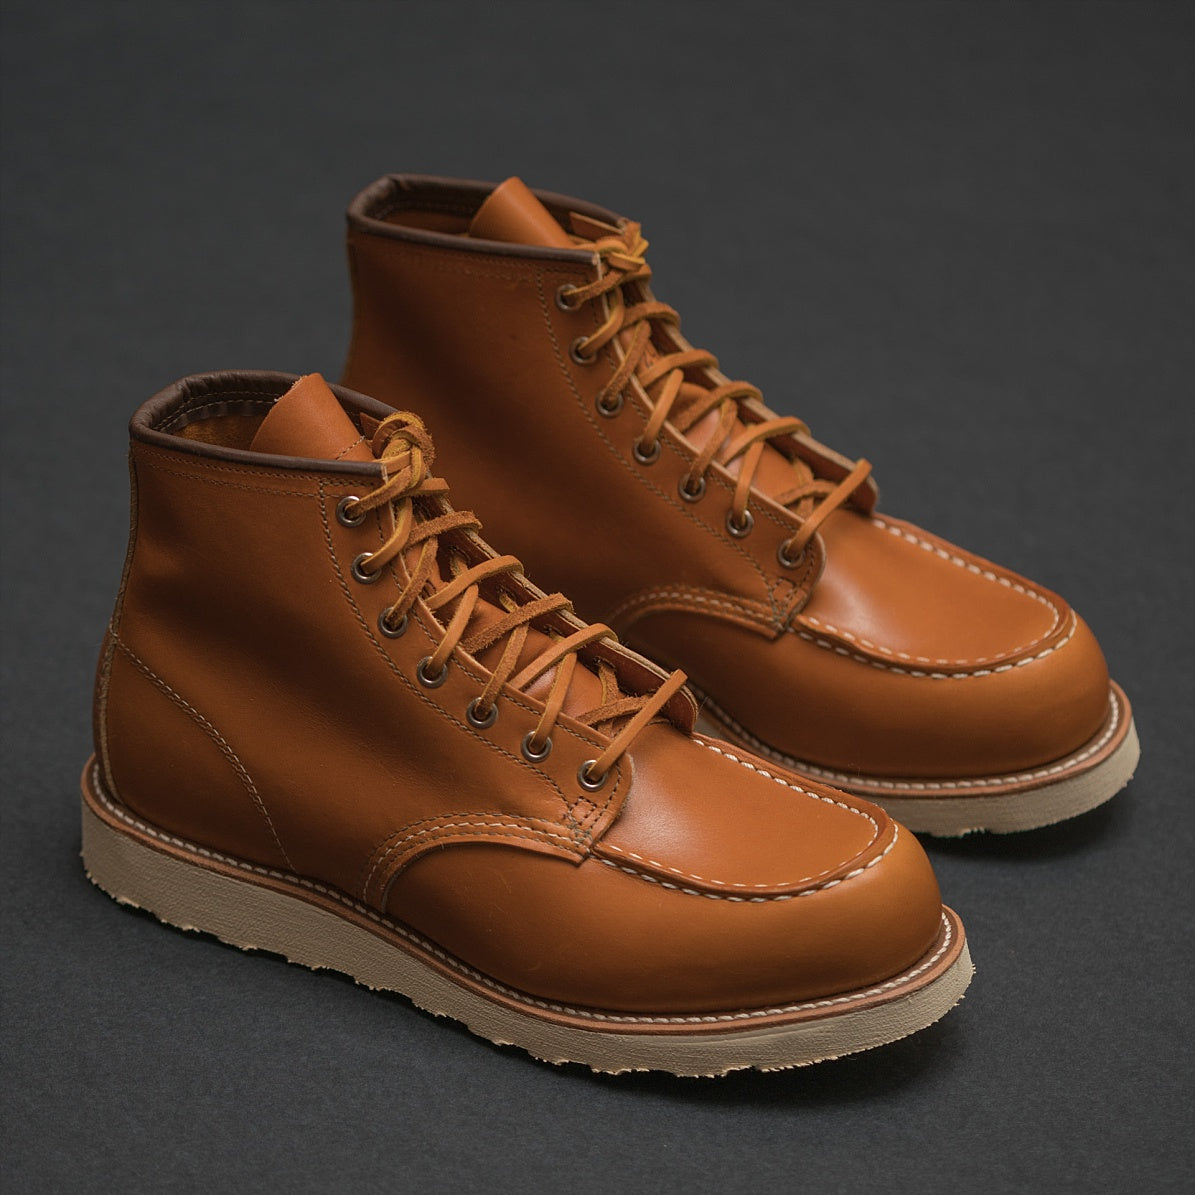 Limited Edition Irish Setter Boots by